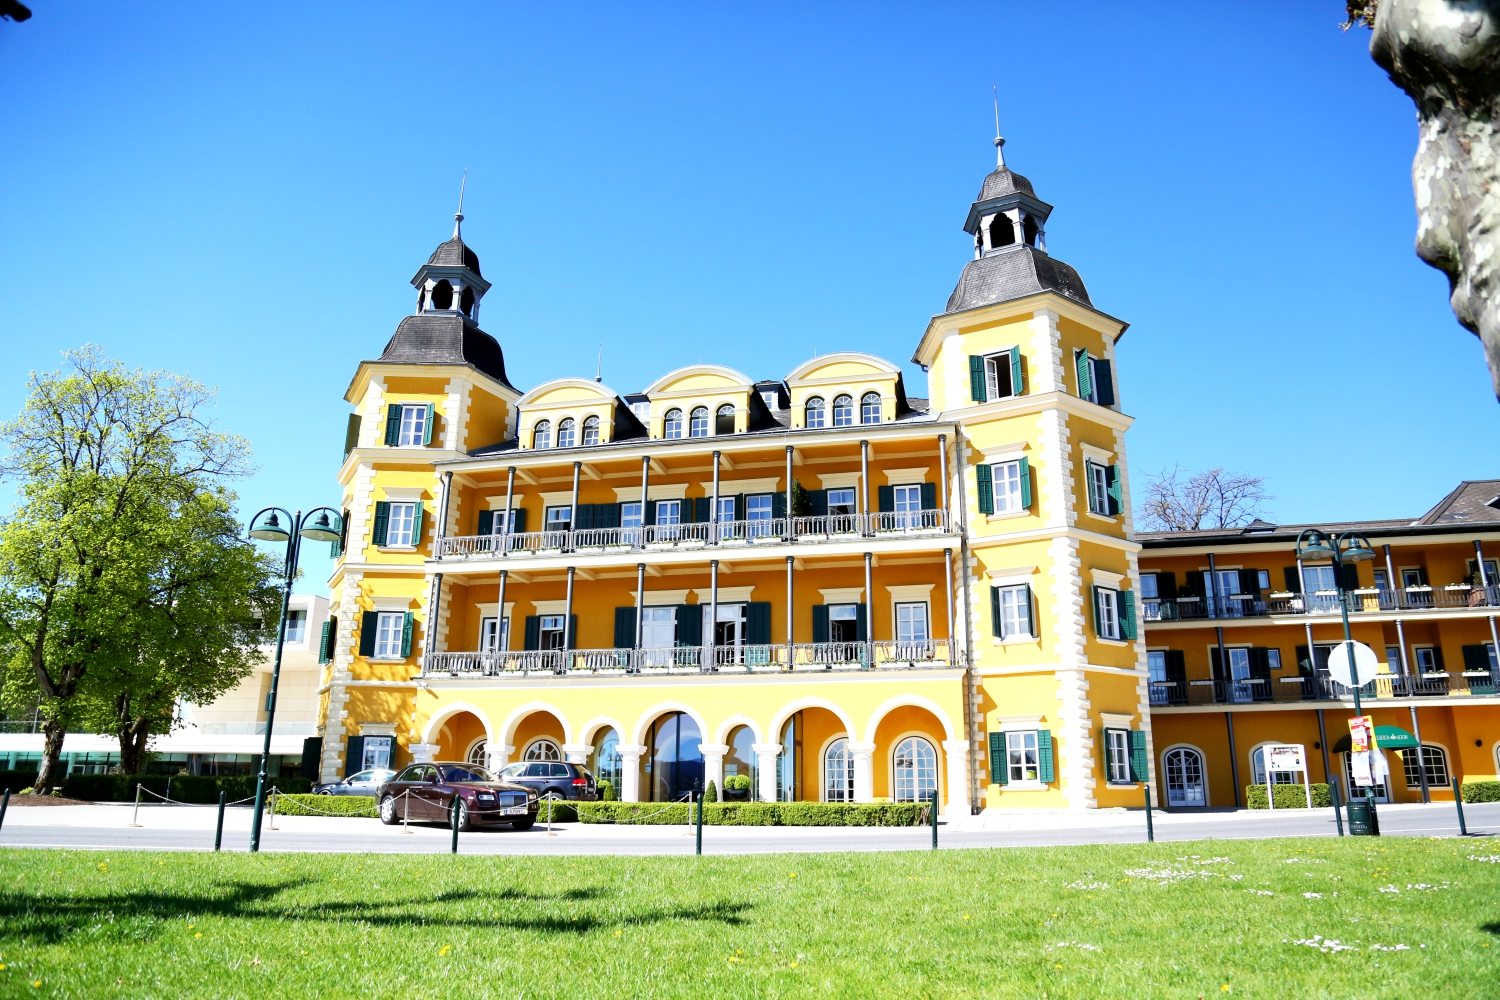 Hotel In Velden Direkt Am See